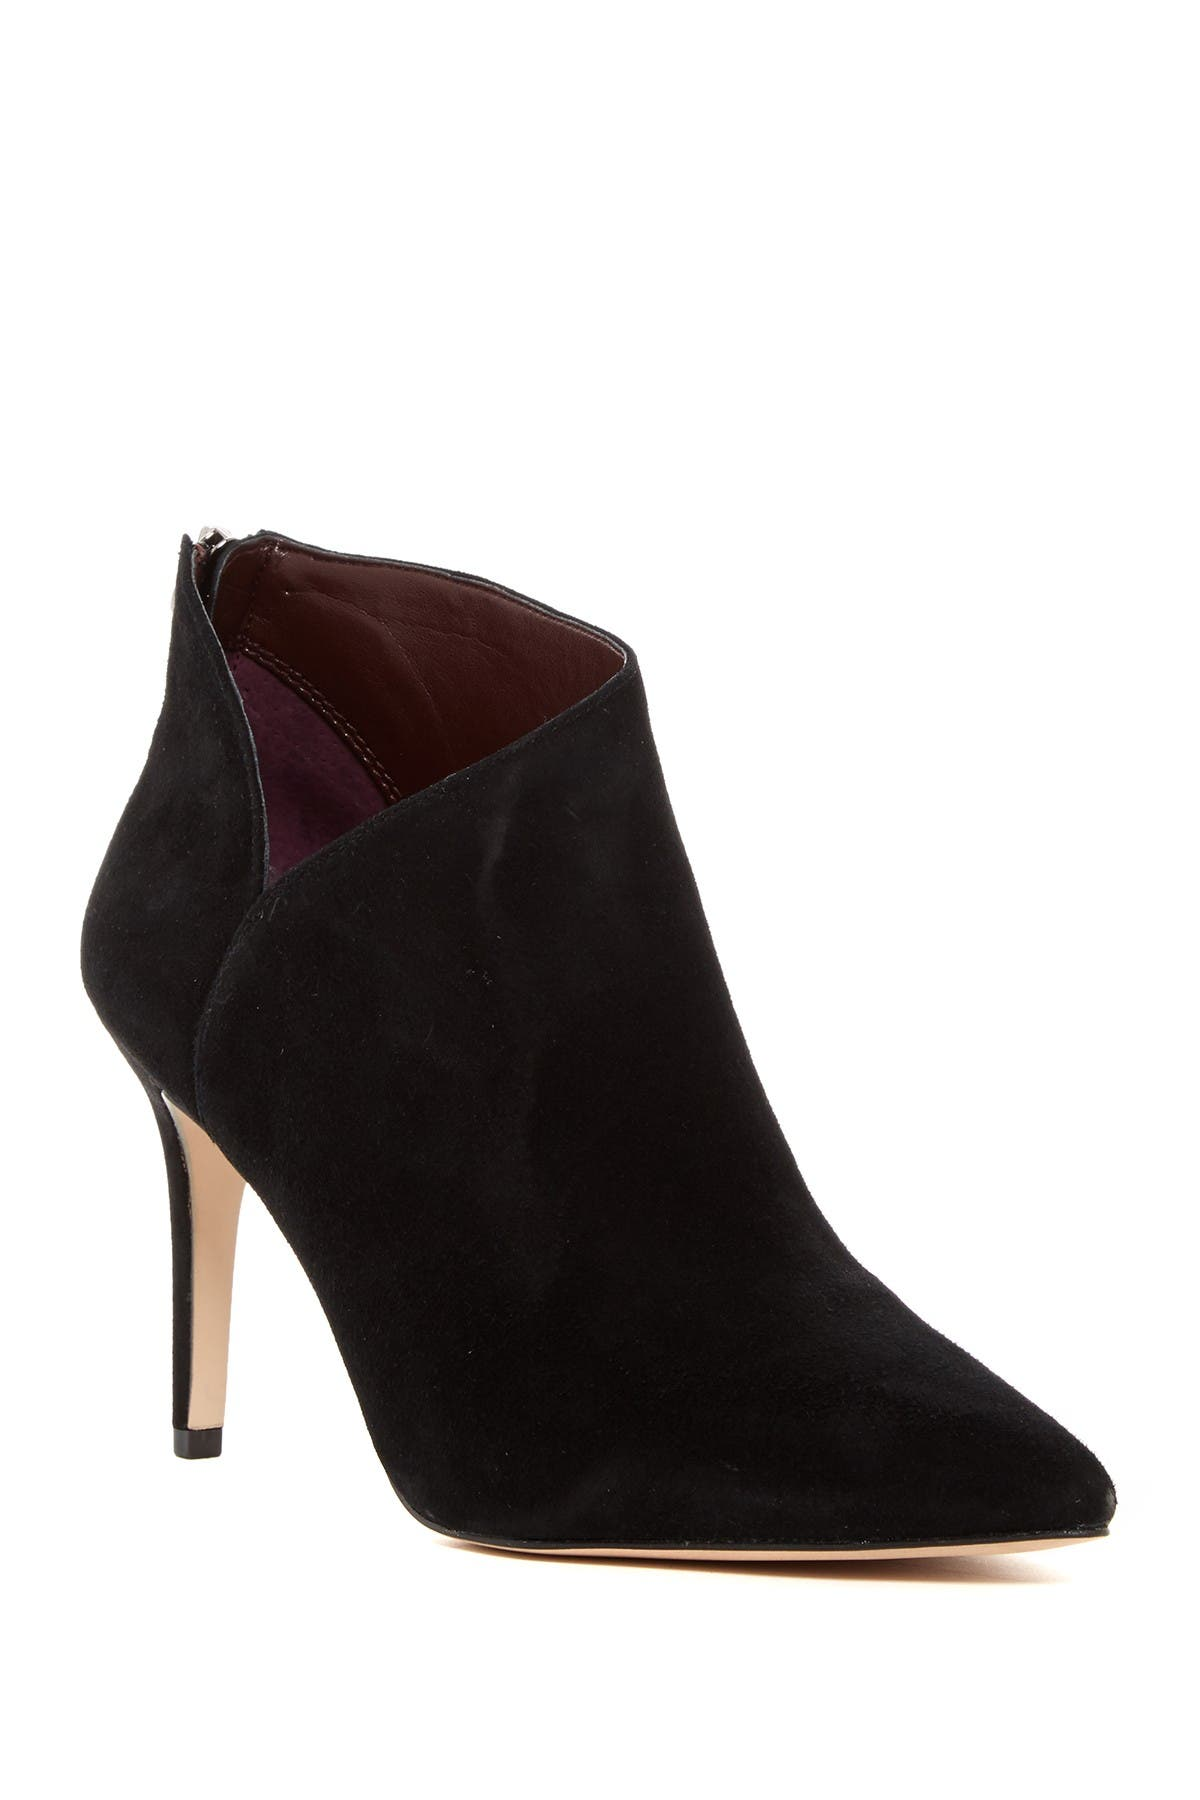 Image of Enzo Angiolini Ruthely Suede Bootie - Wide Width Available